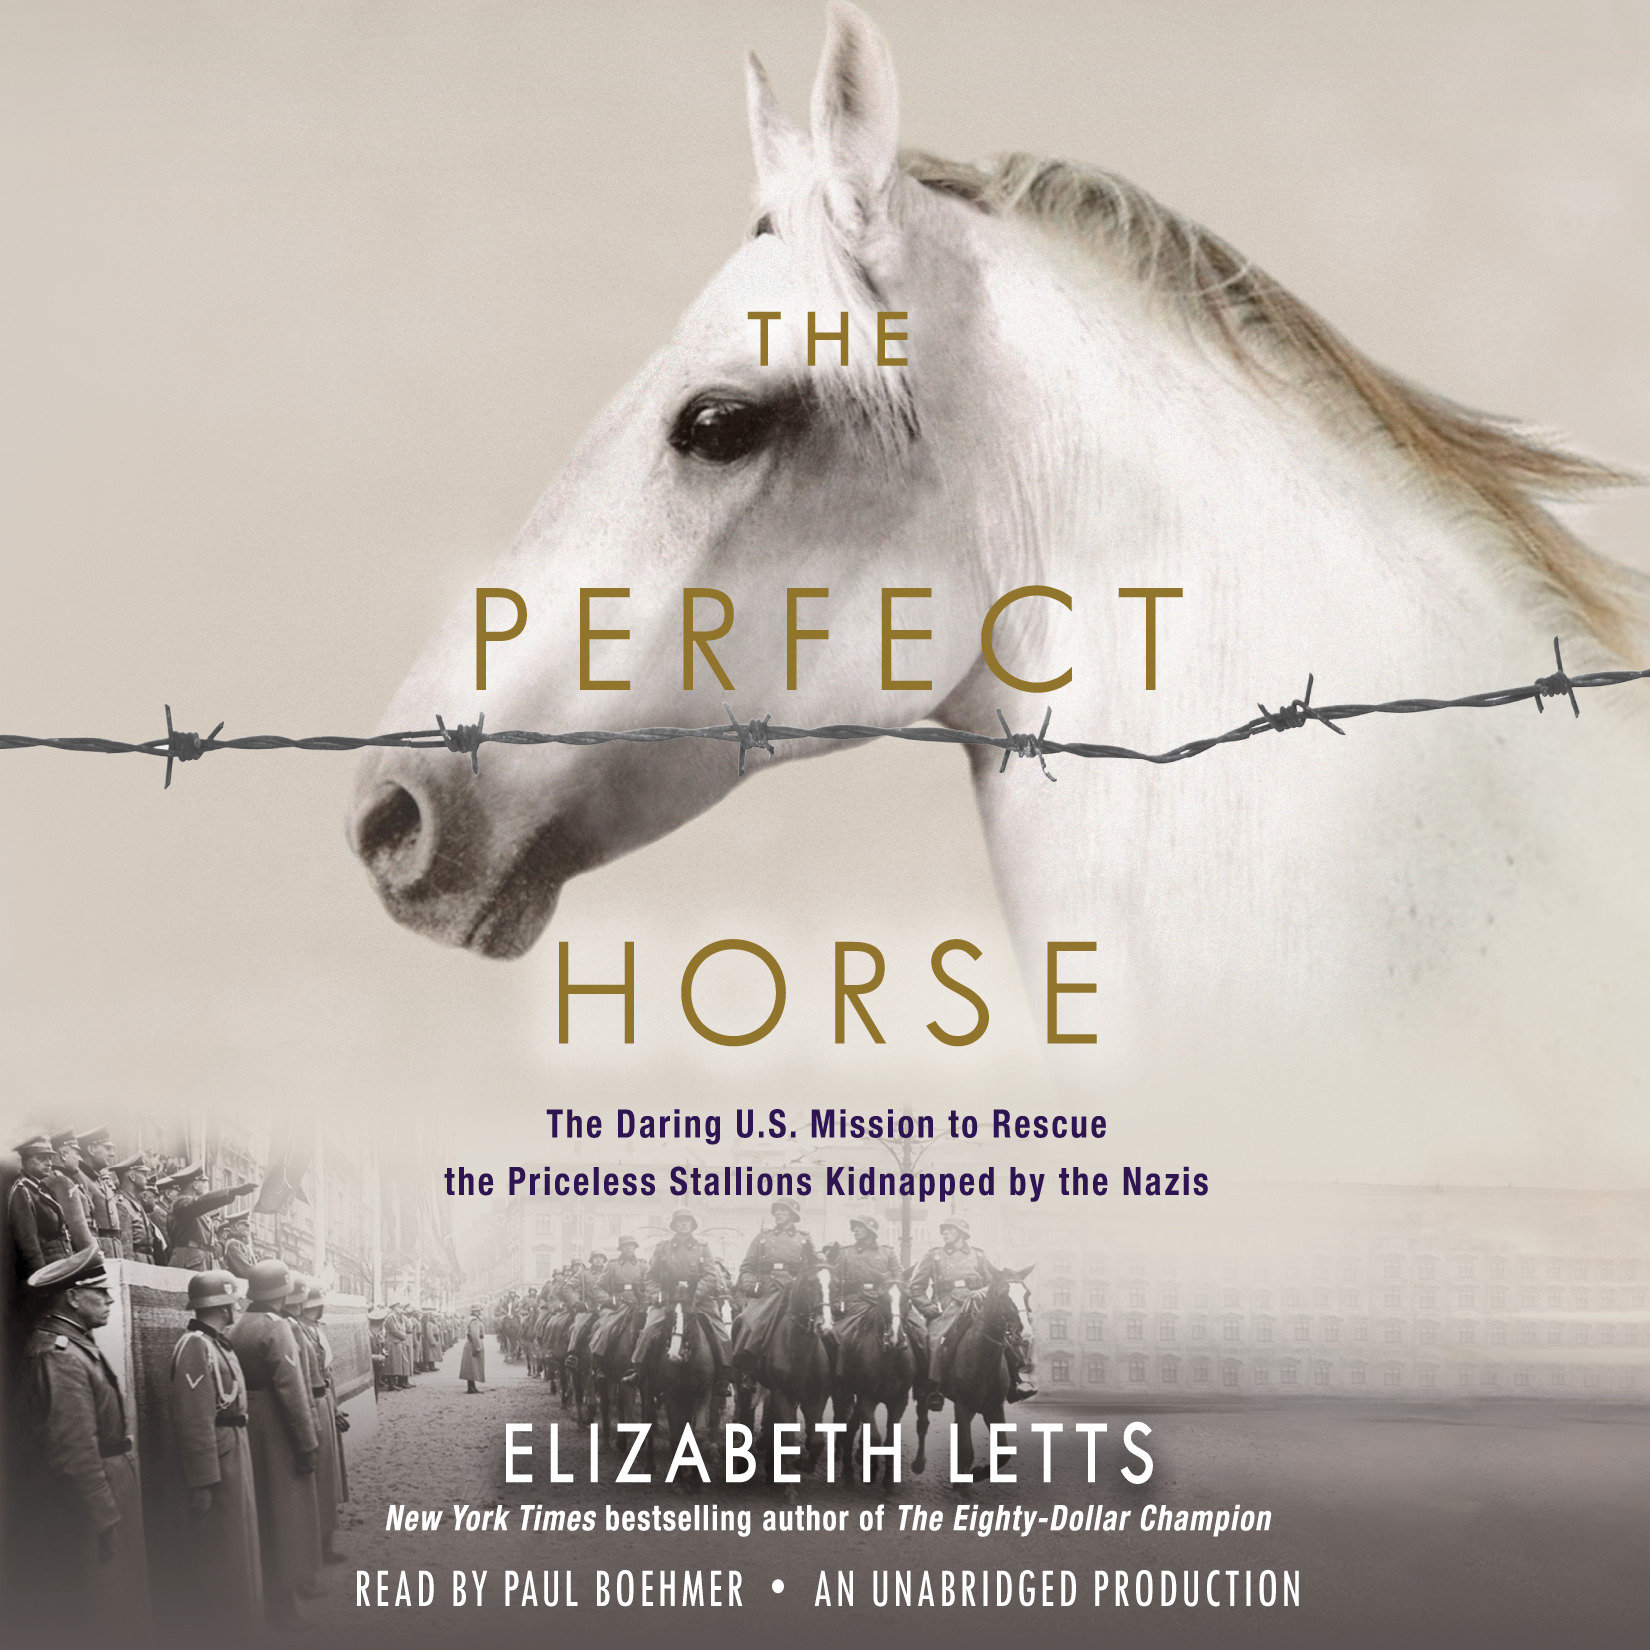 The Perfect Horse : The Daring U.S. Mission to Rescue the Priceless Stallions Kidnapped by the Nazis